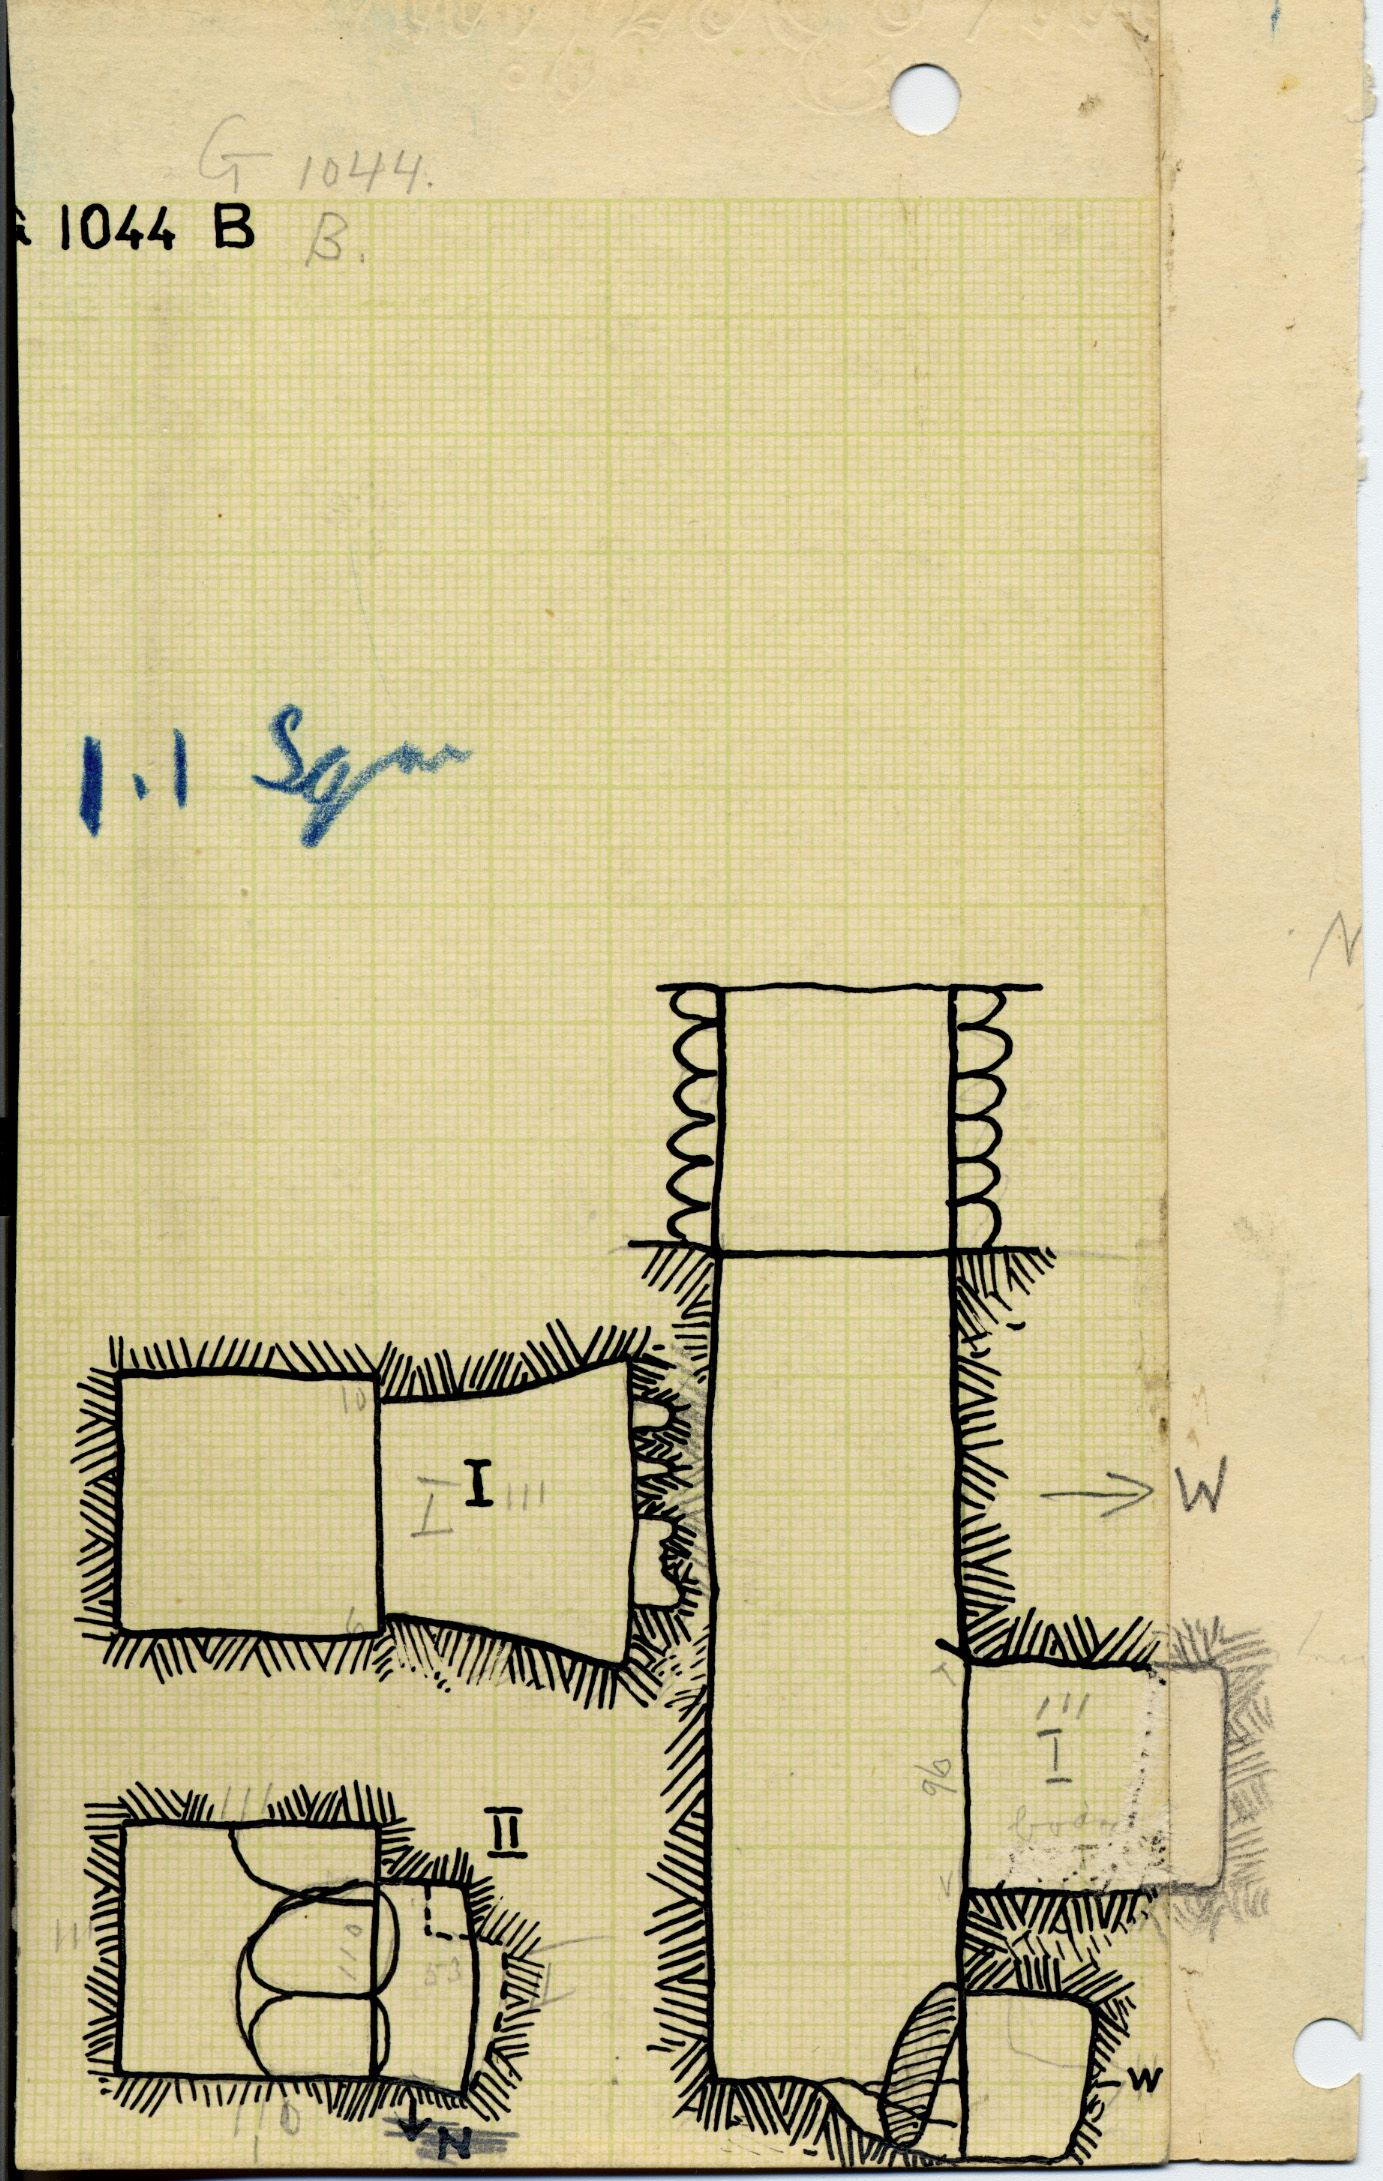 Maps and plans: G 1044, Shaft B